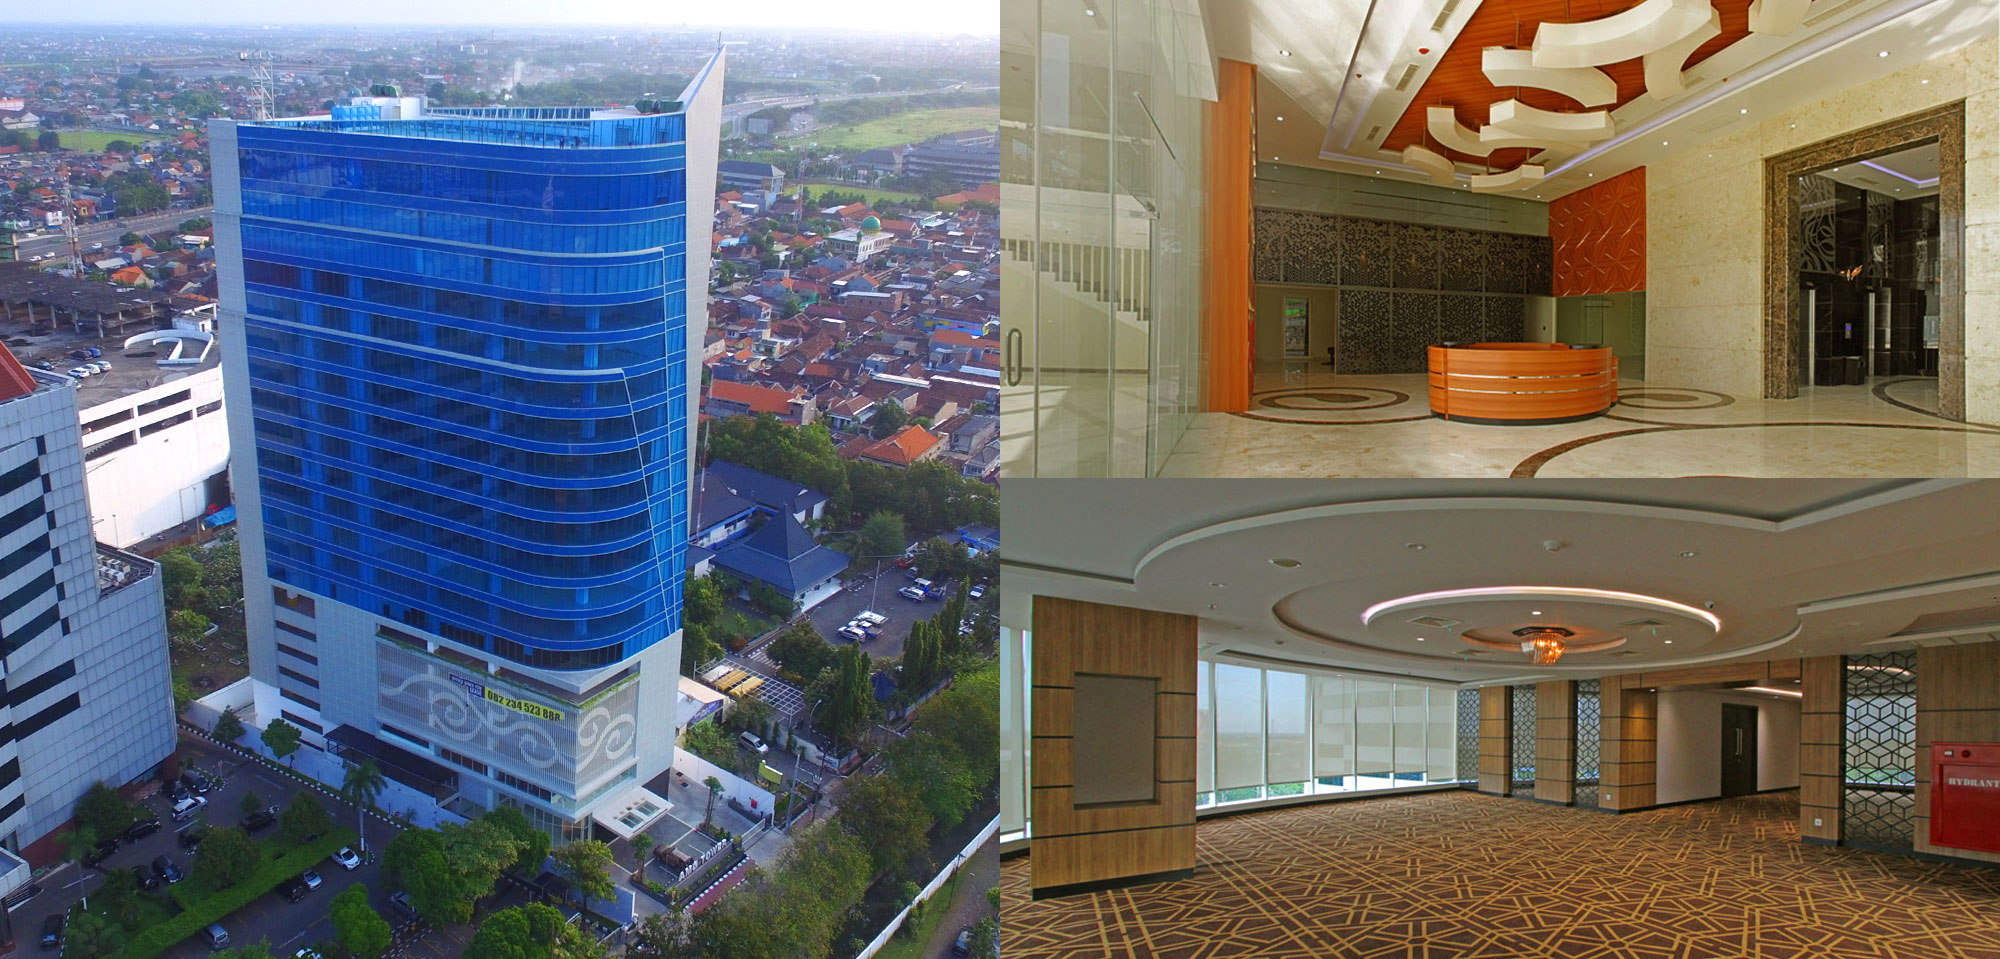 saraswanti-group-amg-tower-surabaya